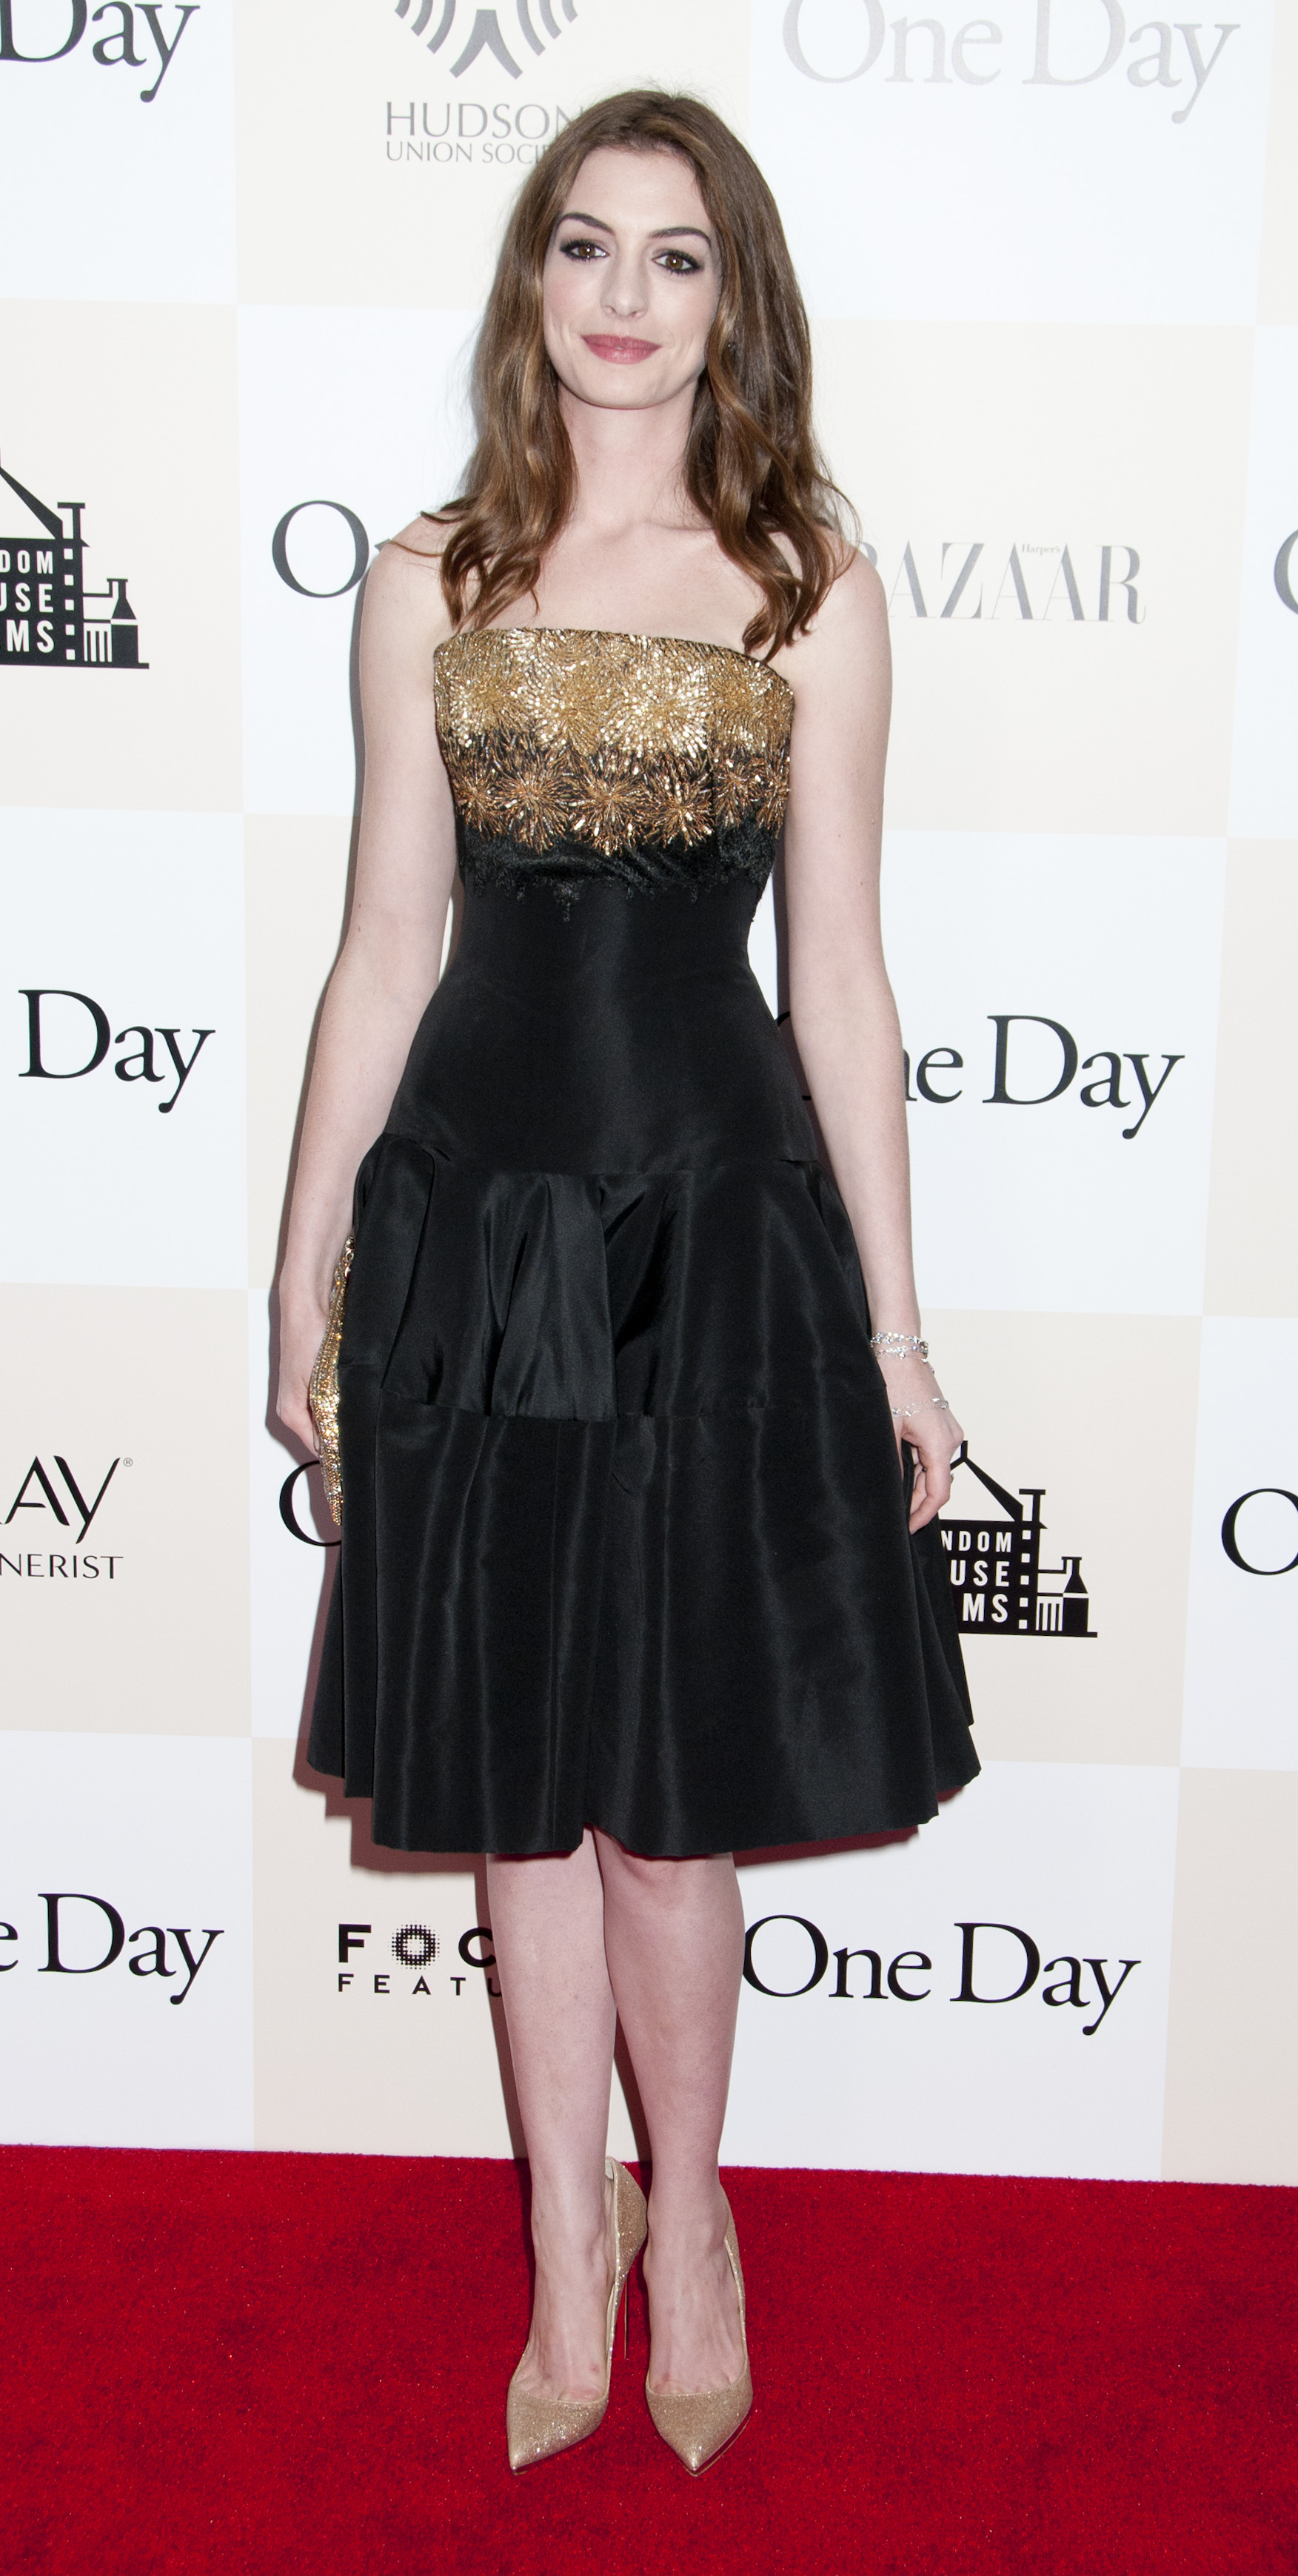 """Anne Hathaway - Premier of """"One Day"""" in 2011 (just before The Dark Knight Rises began filming) Photo Credit: Janet Mayer / PR Photos"""